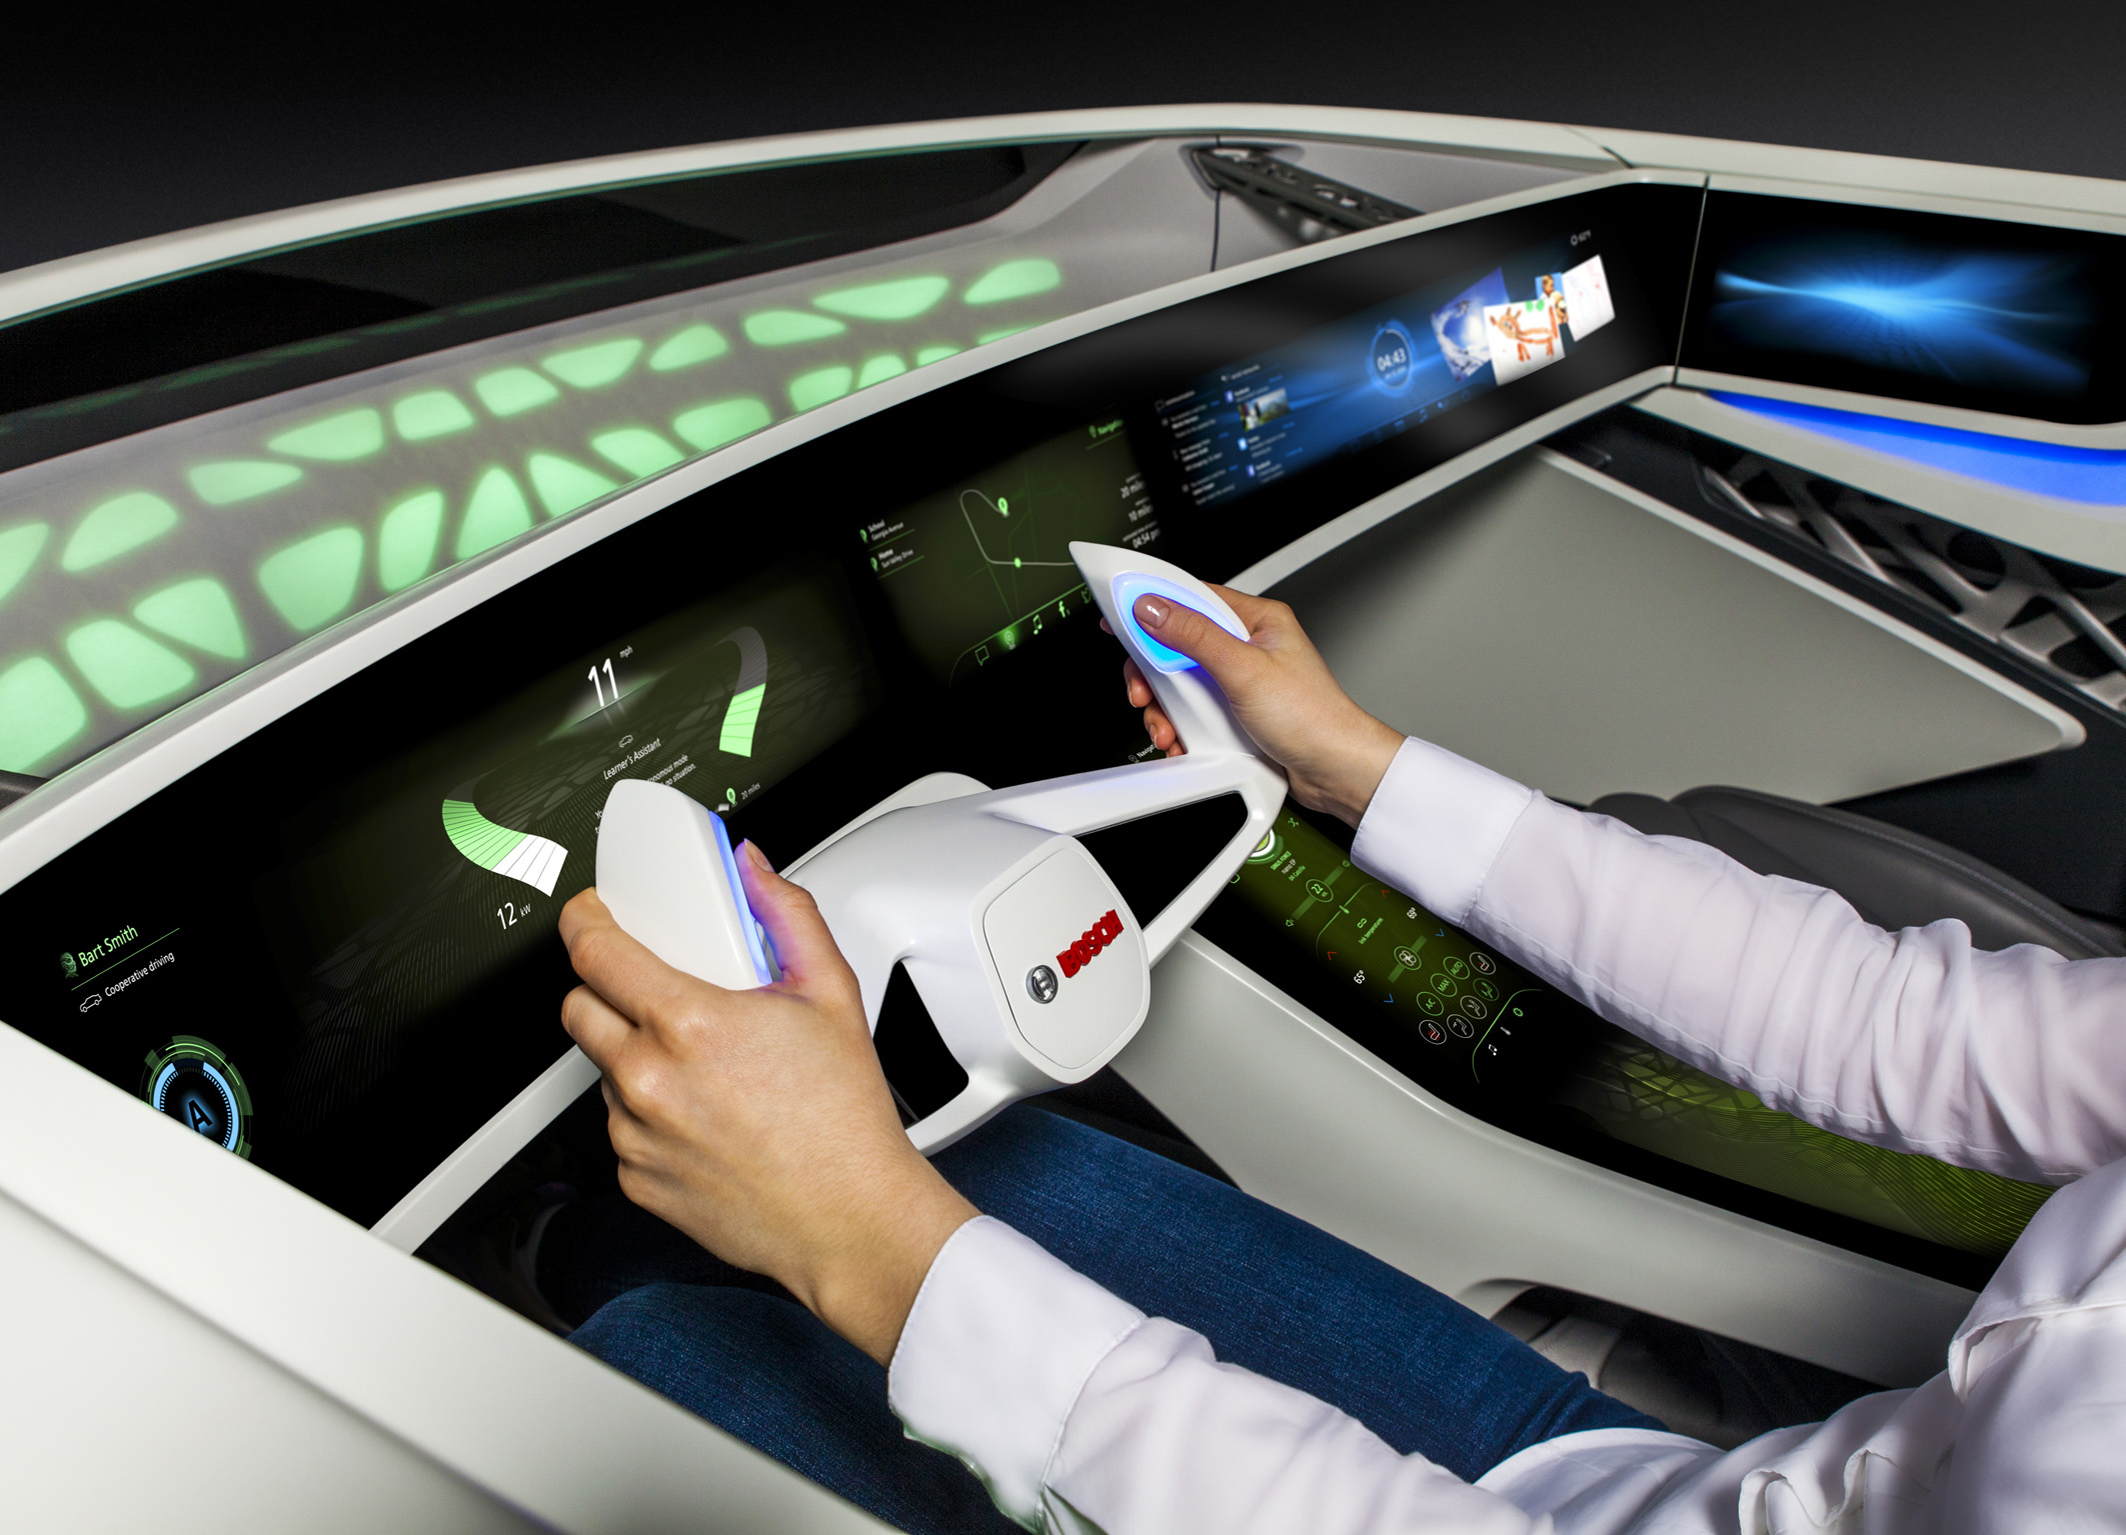 The connected car becomes a personal assistant